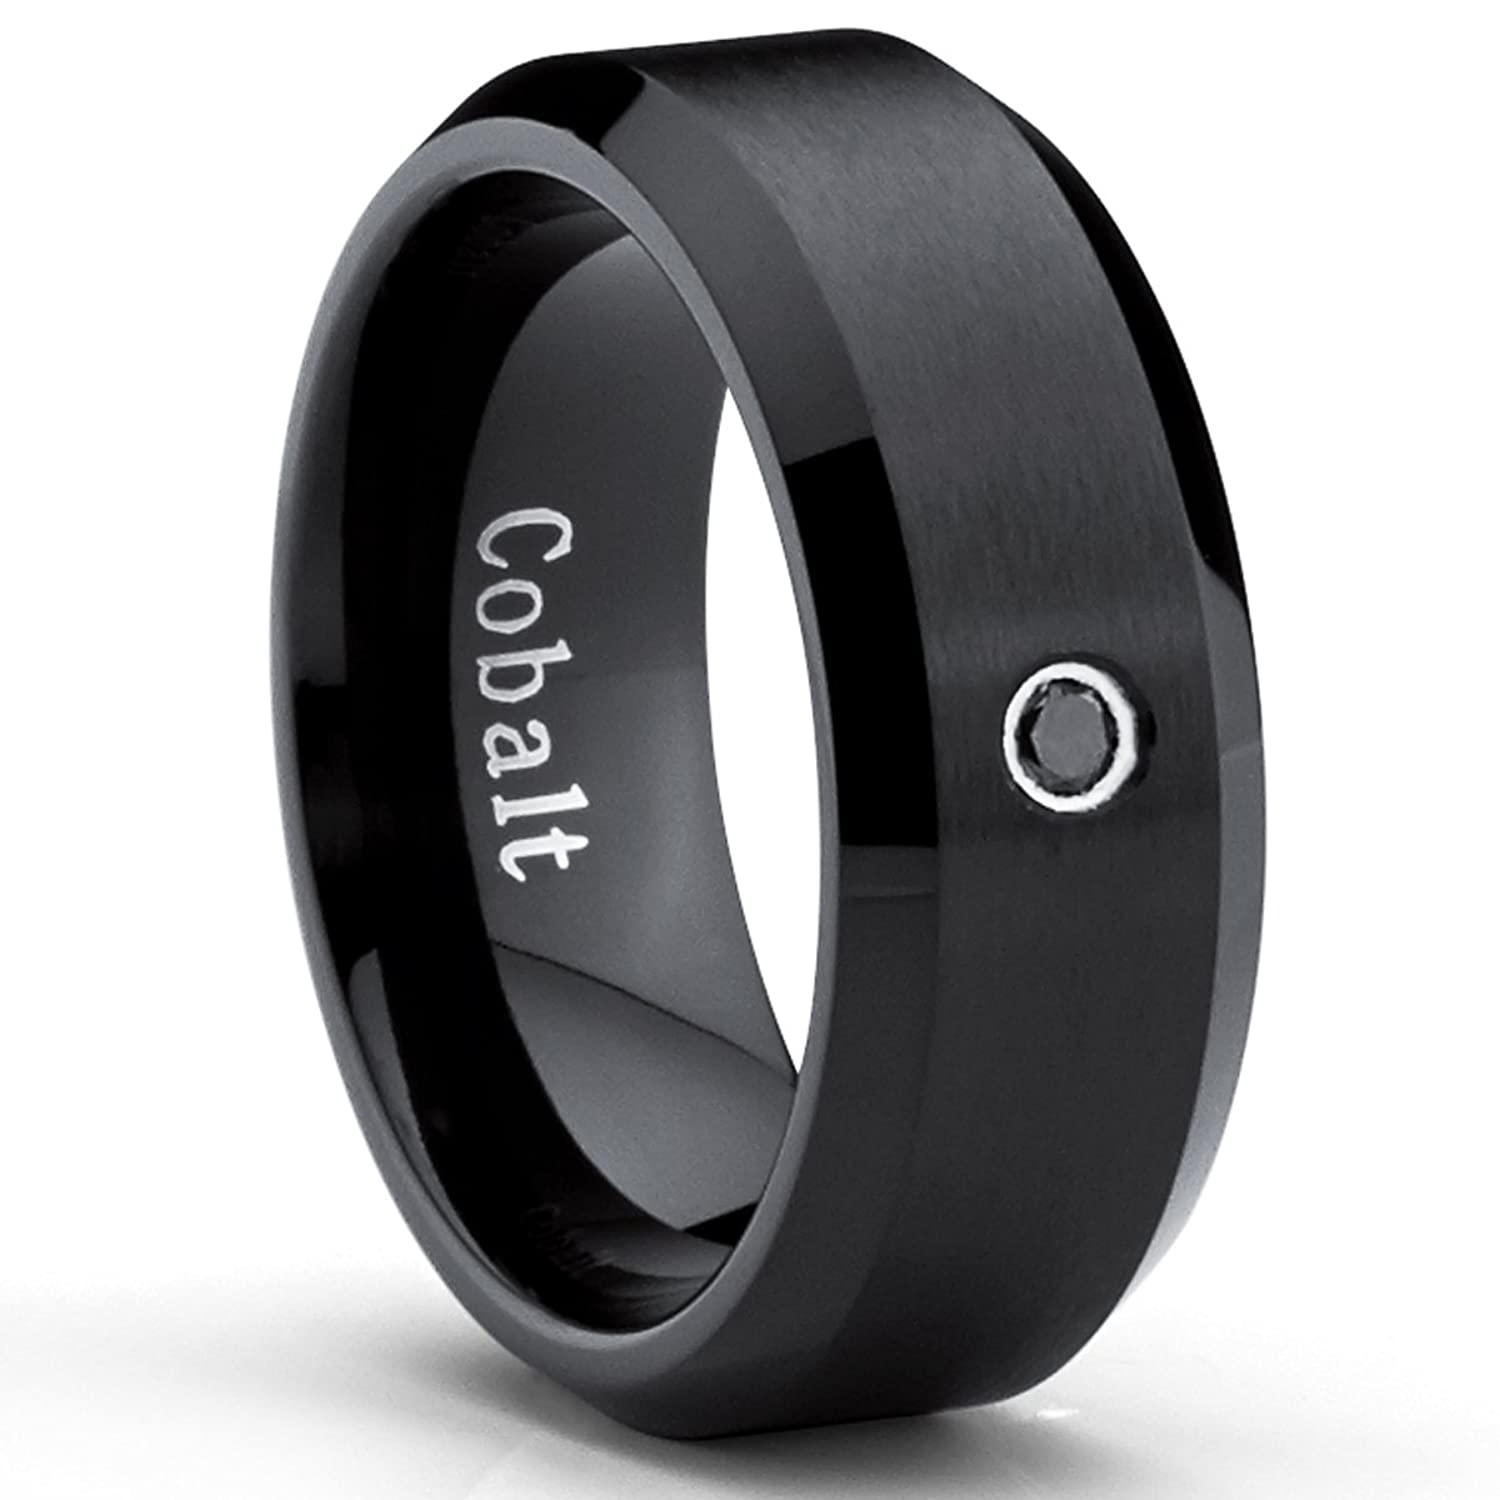 extraordinary designs inspiration male wedding band bands who you rings of obniiis jewelry those black choose for com